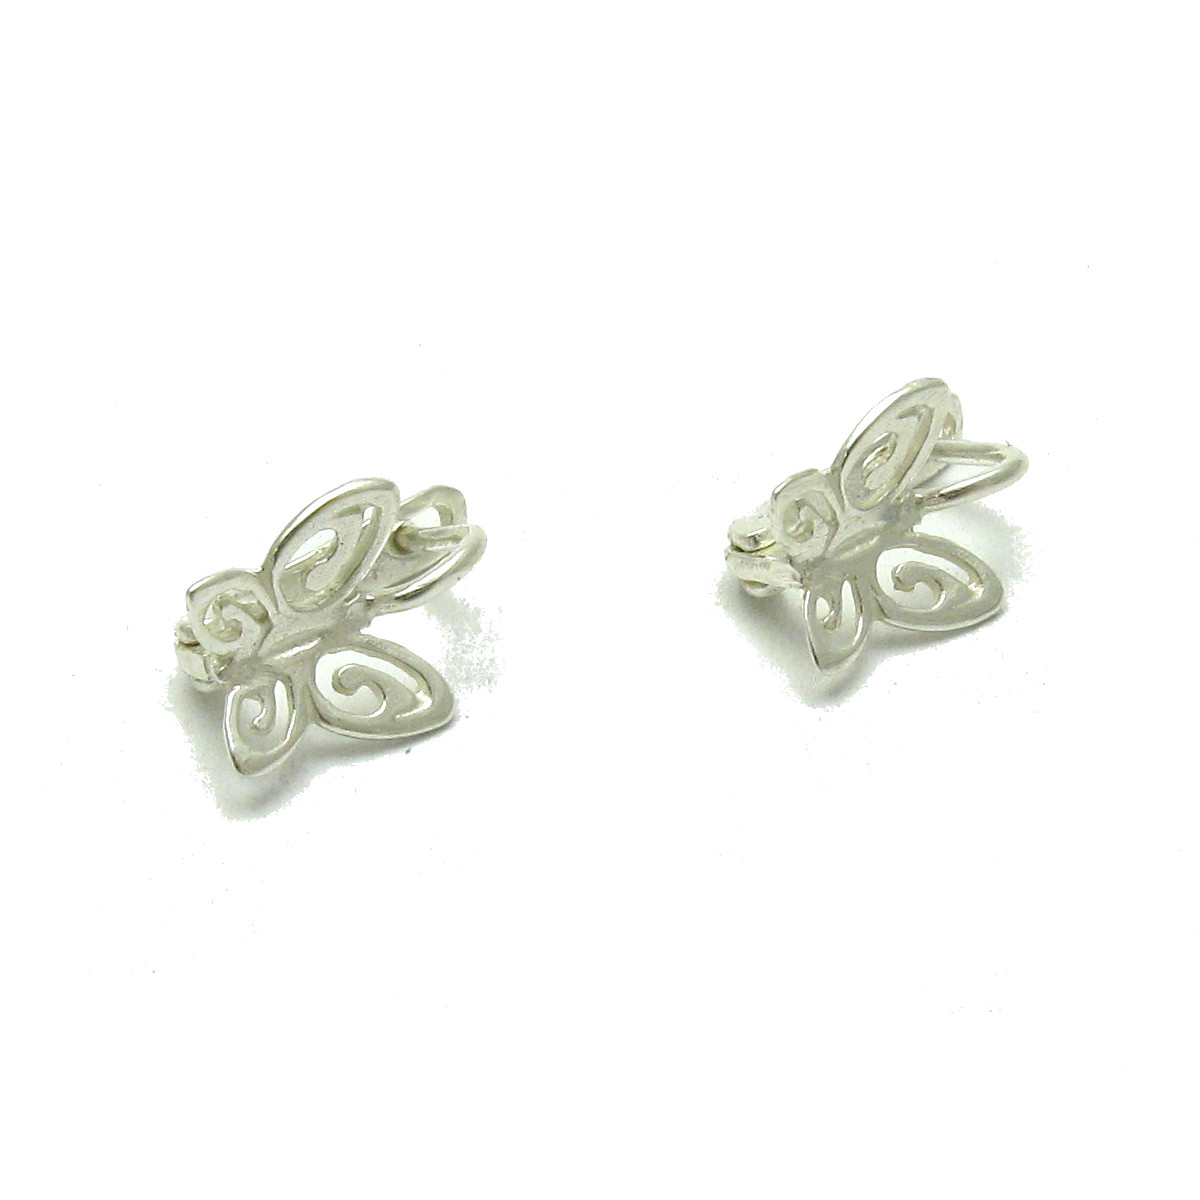 Silver earrings - E000620